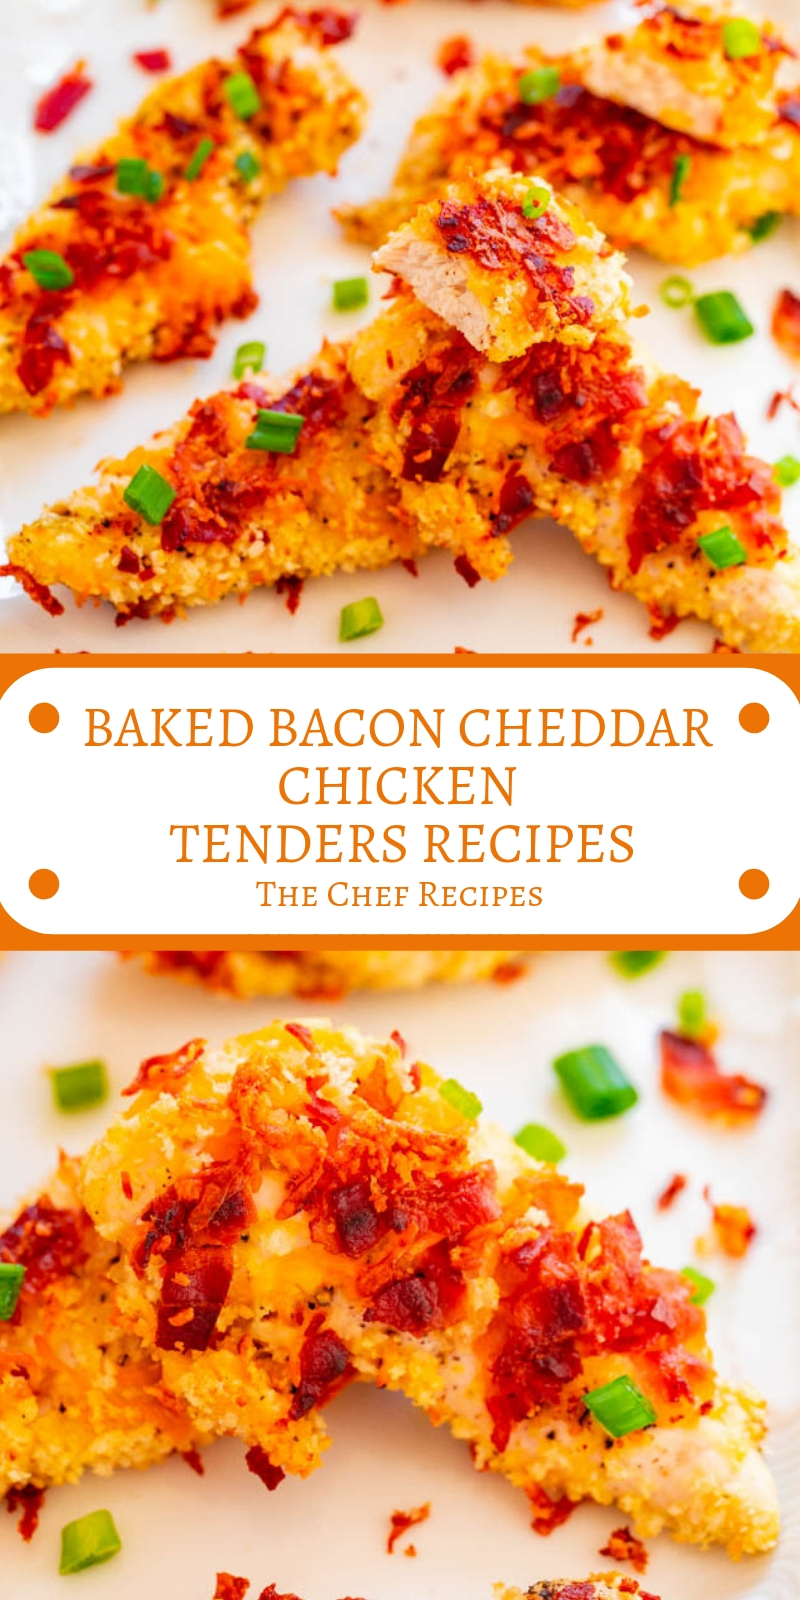 BAKED BACON CHEDDAR CHICKEN TENDERS RECIPES